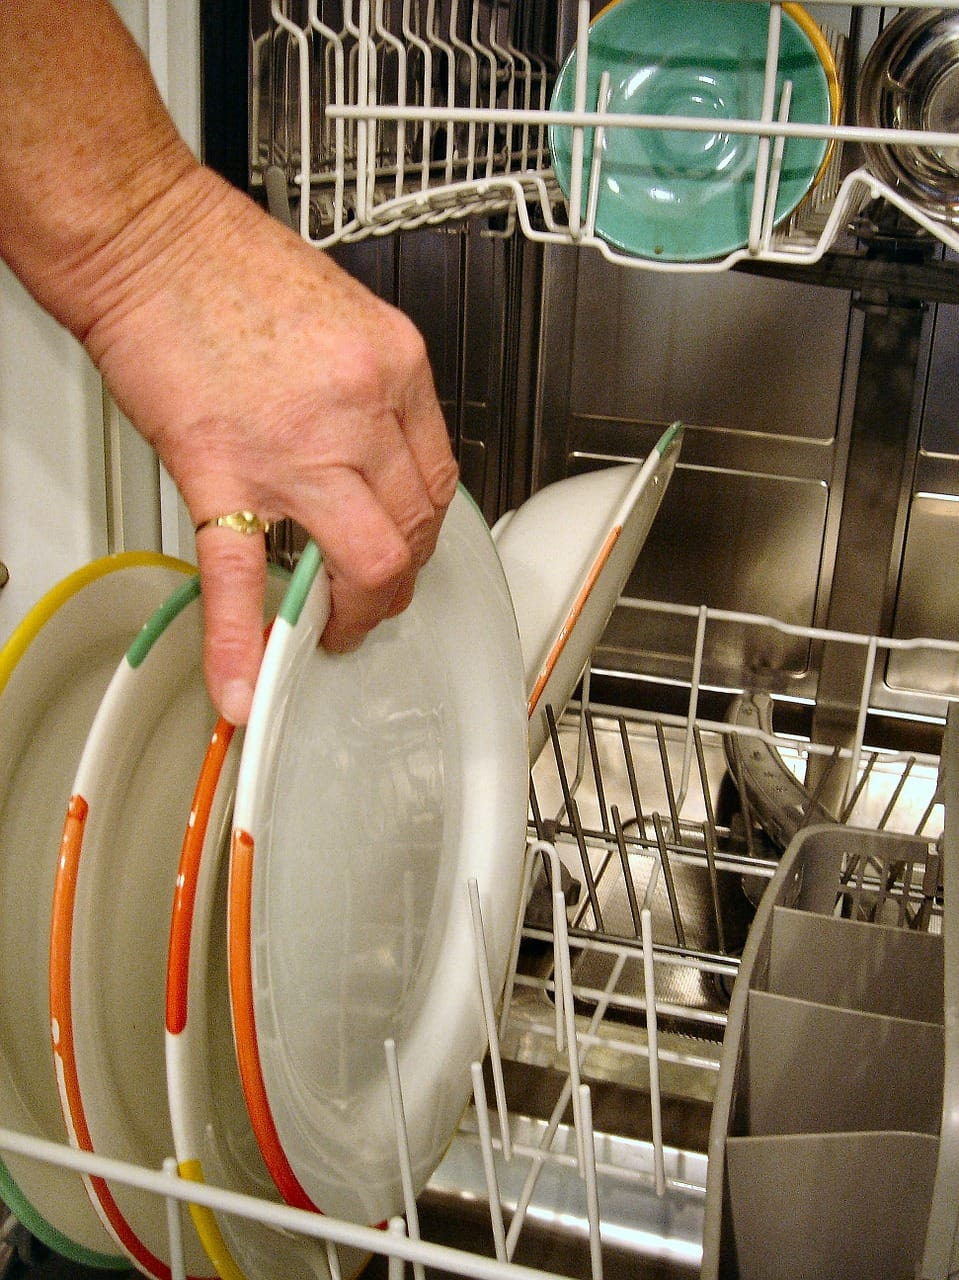 Appliance City - Hints and Tips - How to clean your dishwasher